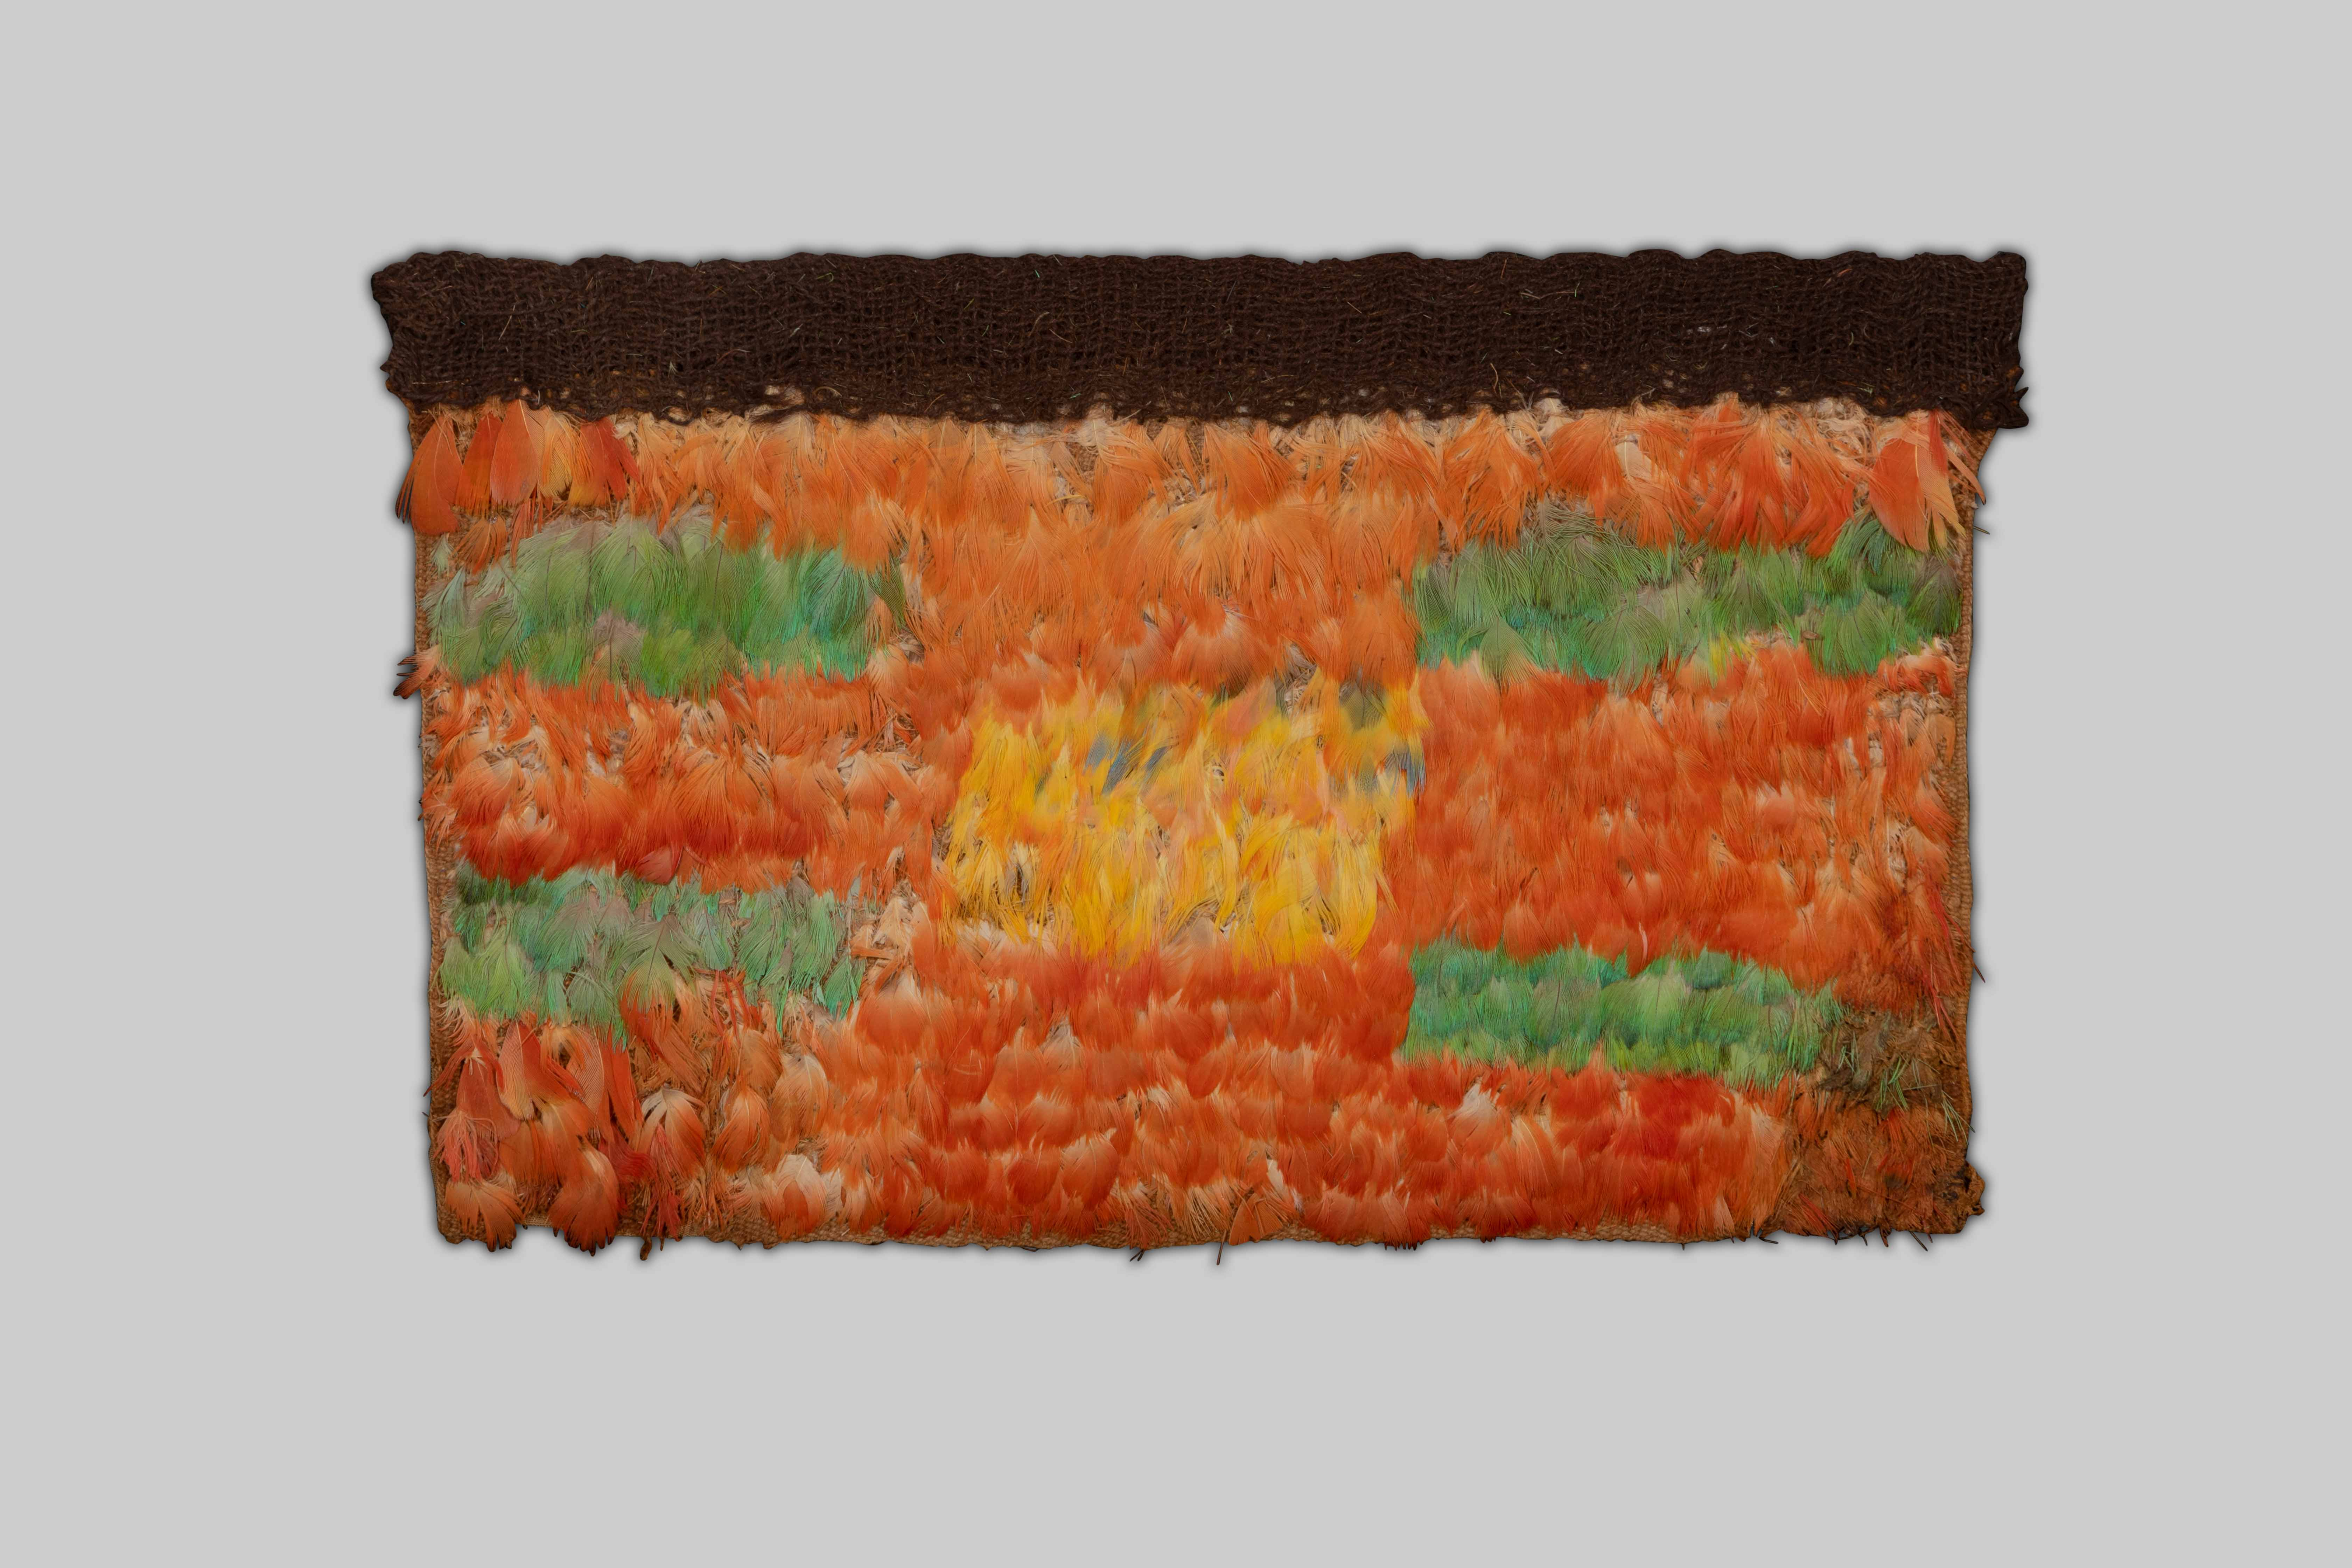 Huari Feather Panel (Orange and Yellow), c.800 AD